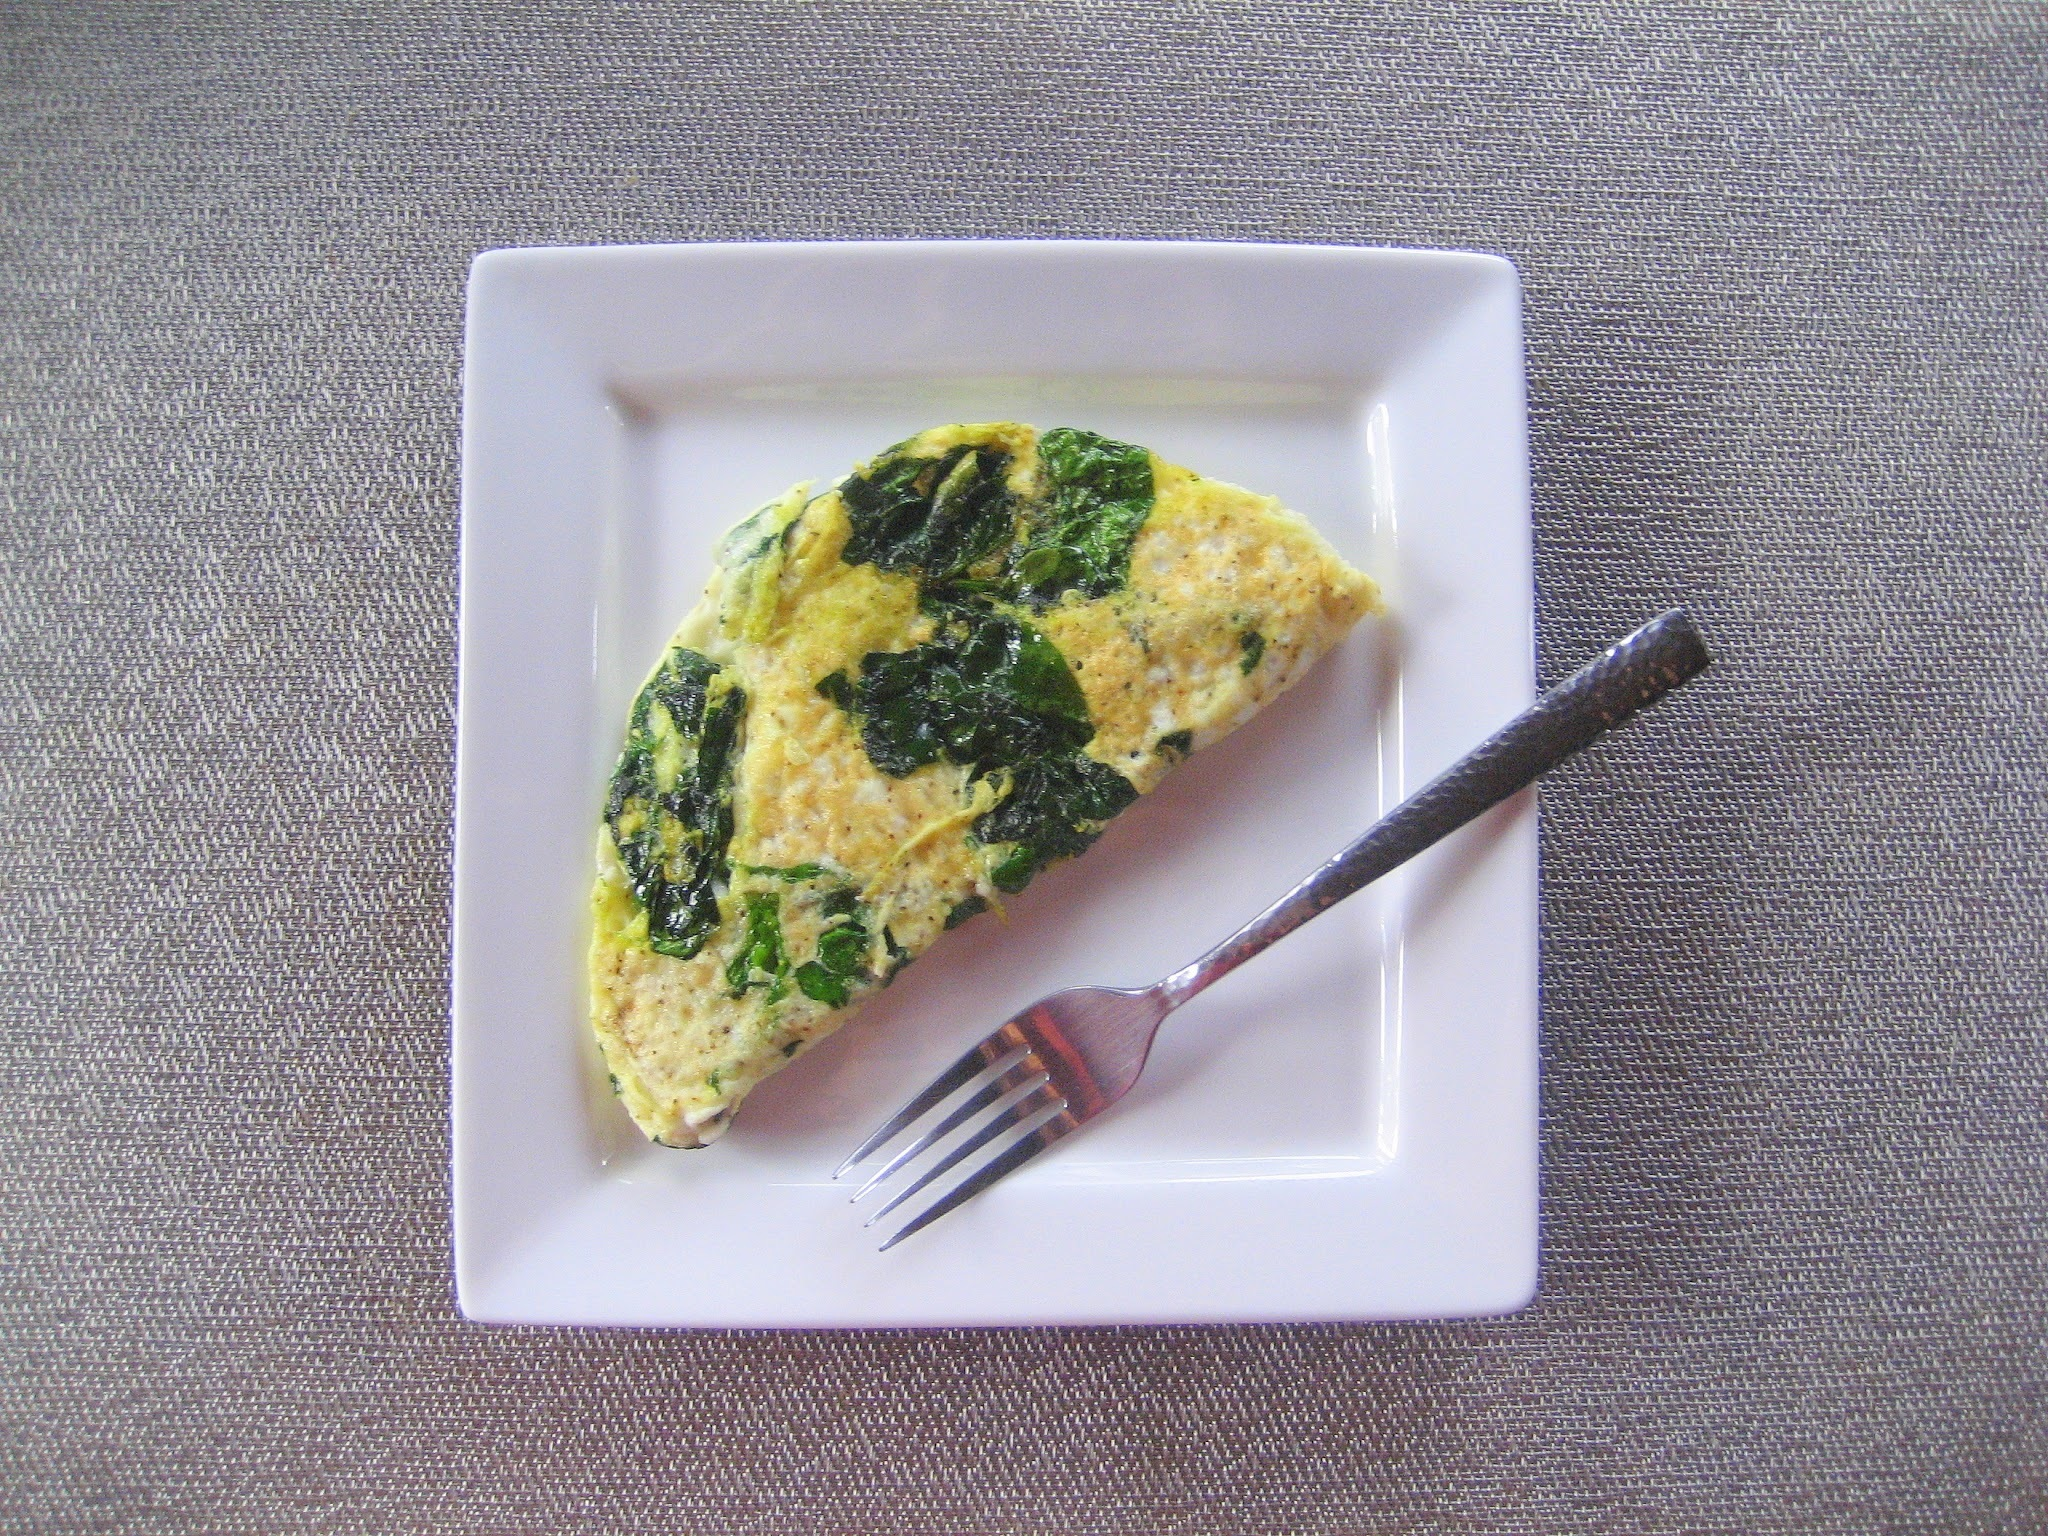 Breakfast Series: Egg White & Spinach Omelet